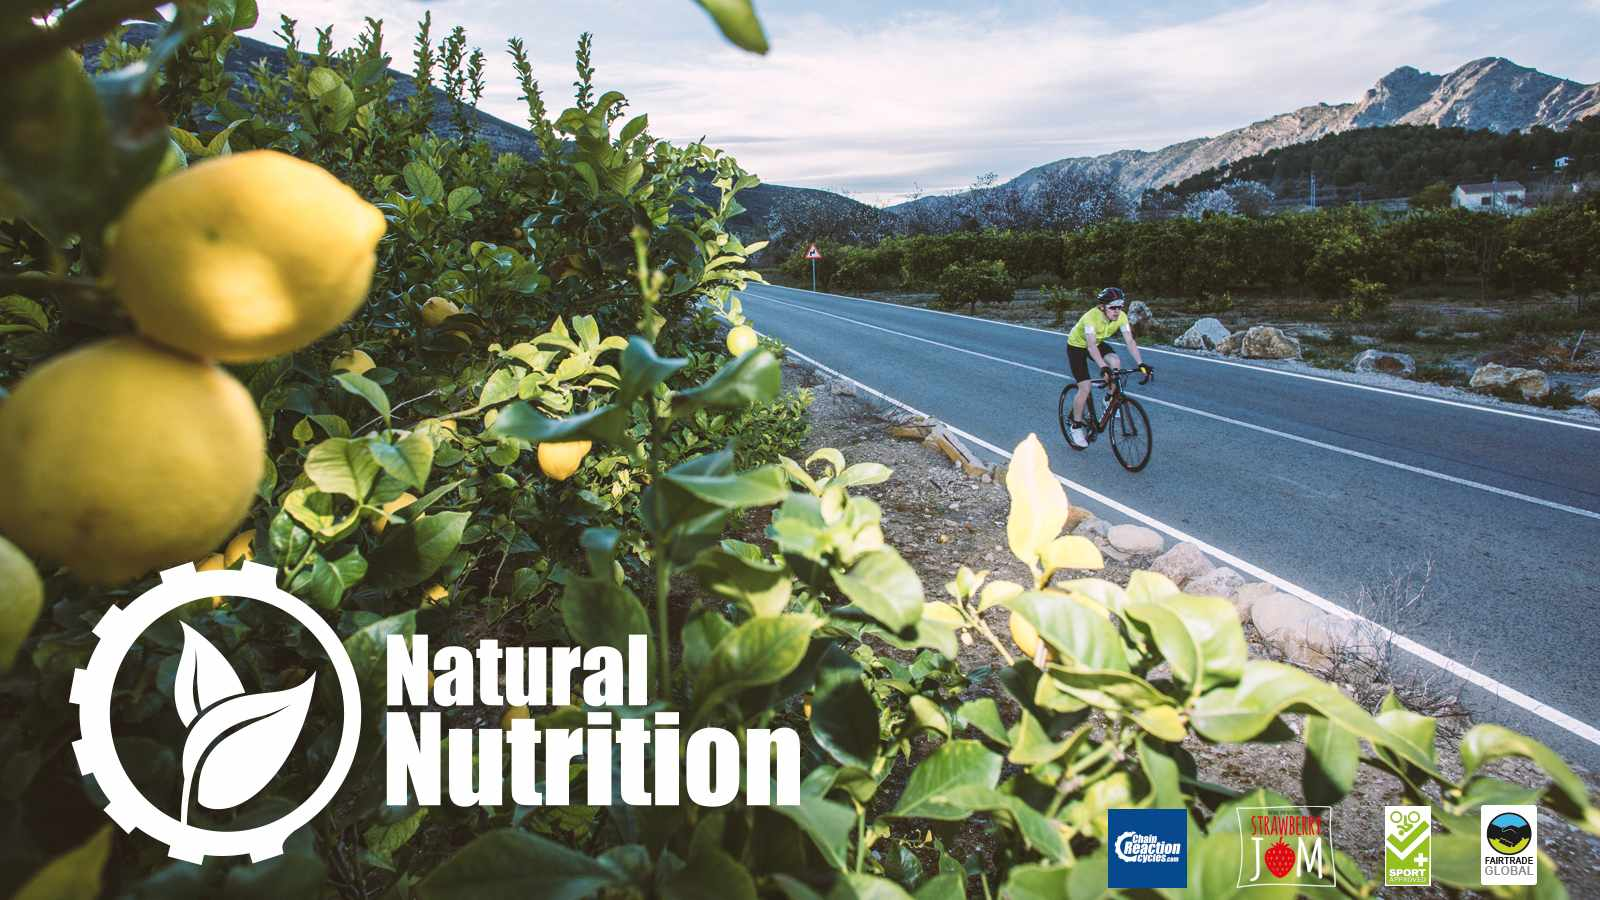 Natural Nutrition is a fresh, cycle-specific nutrition brand from Chain Reaction Cycles